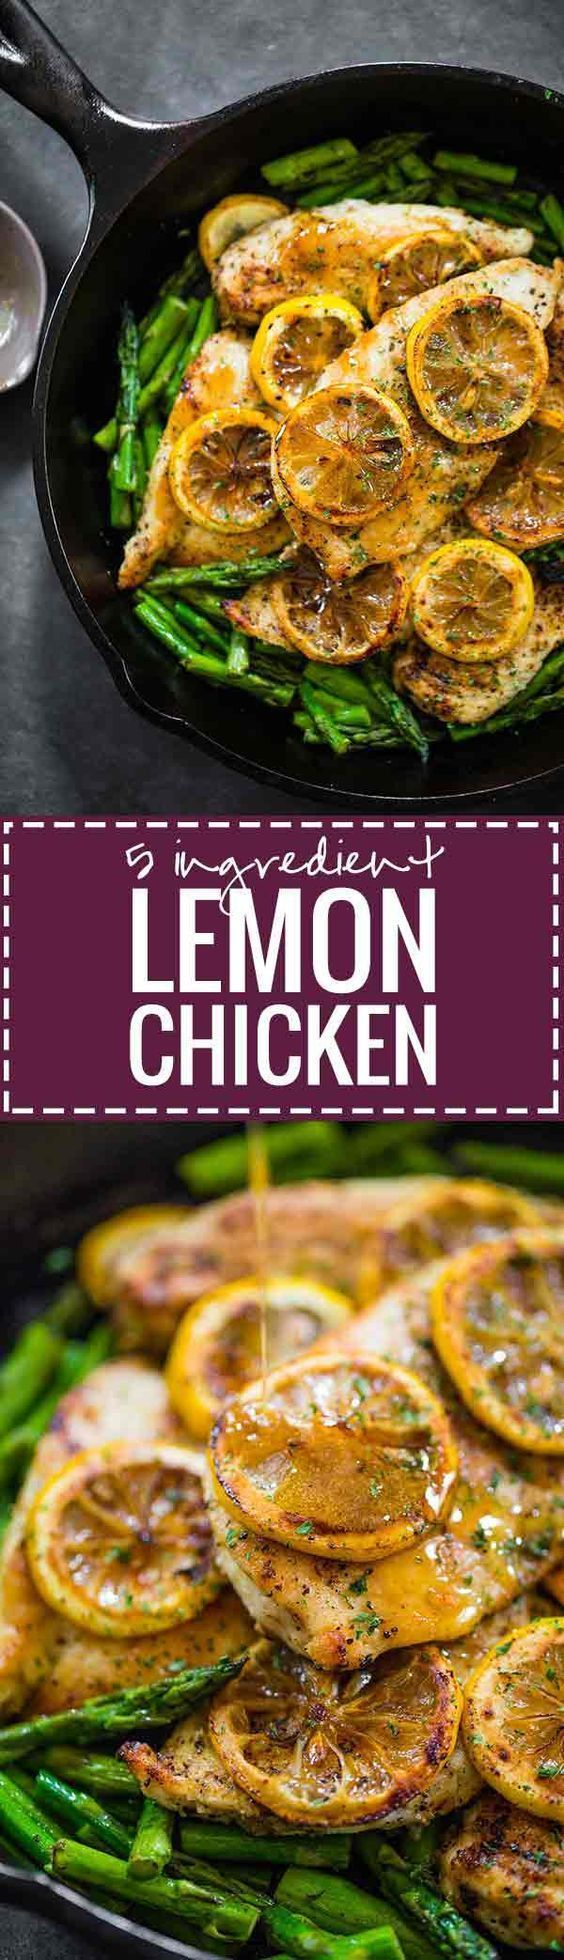 Easy, quick, and delicious ranch flavored chicken cooked in one pot with rice and spinach.